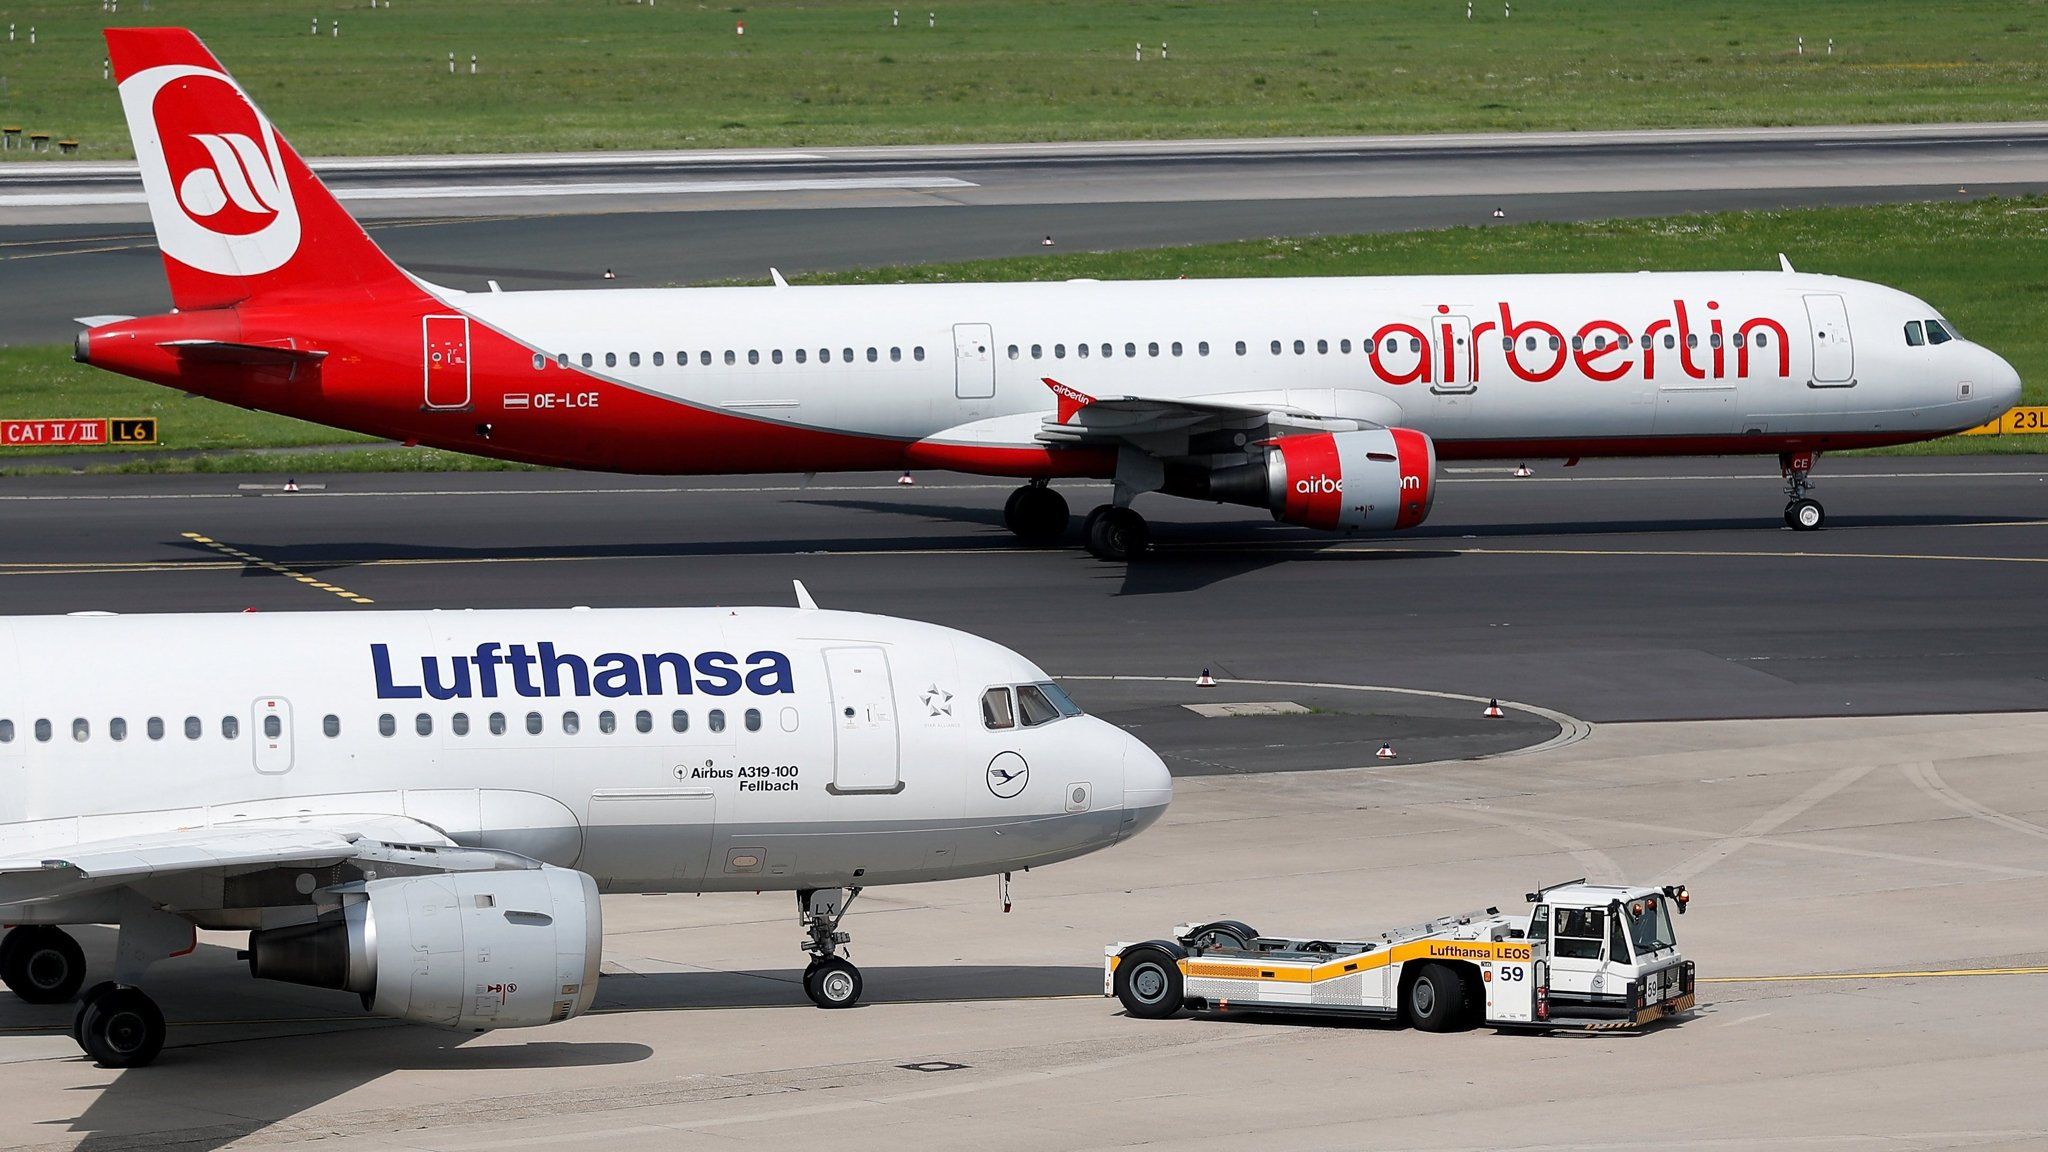 Cash Pool Fellbach Lufthansa To Sign Deal To Buy Half Of Air Berlin Financial Times